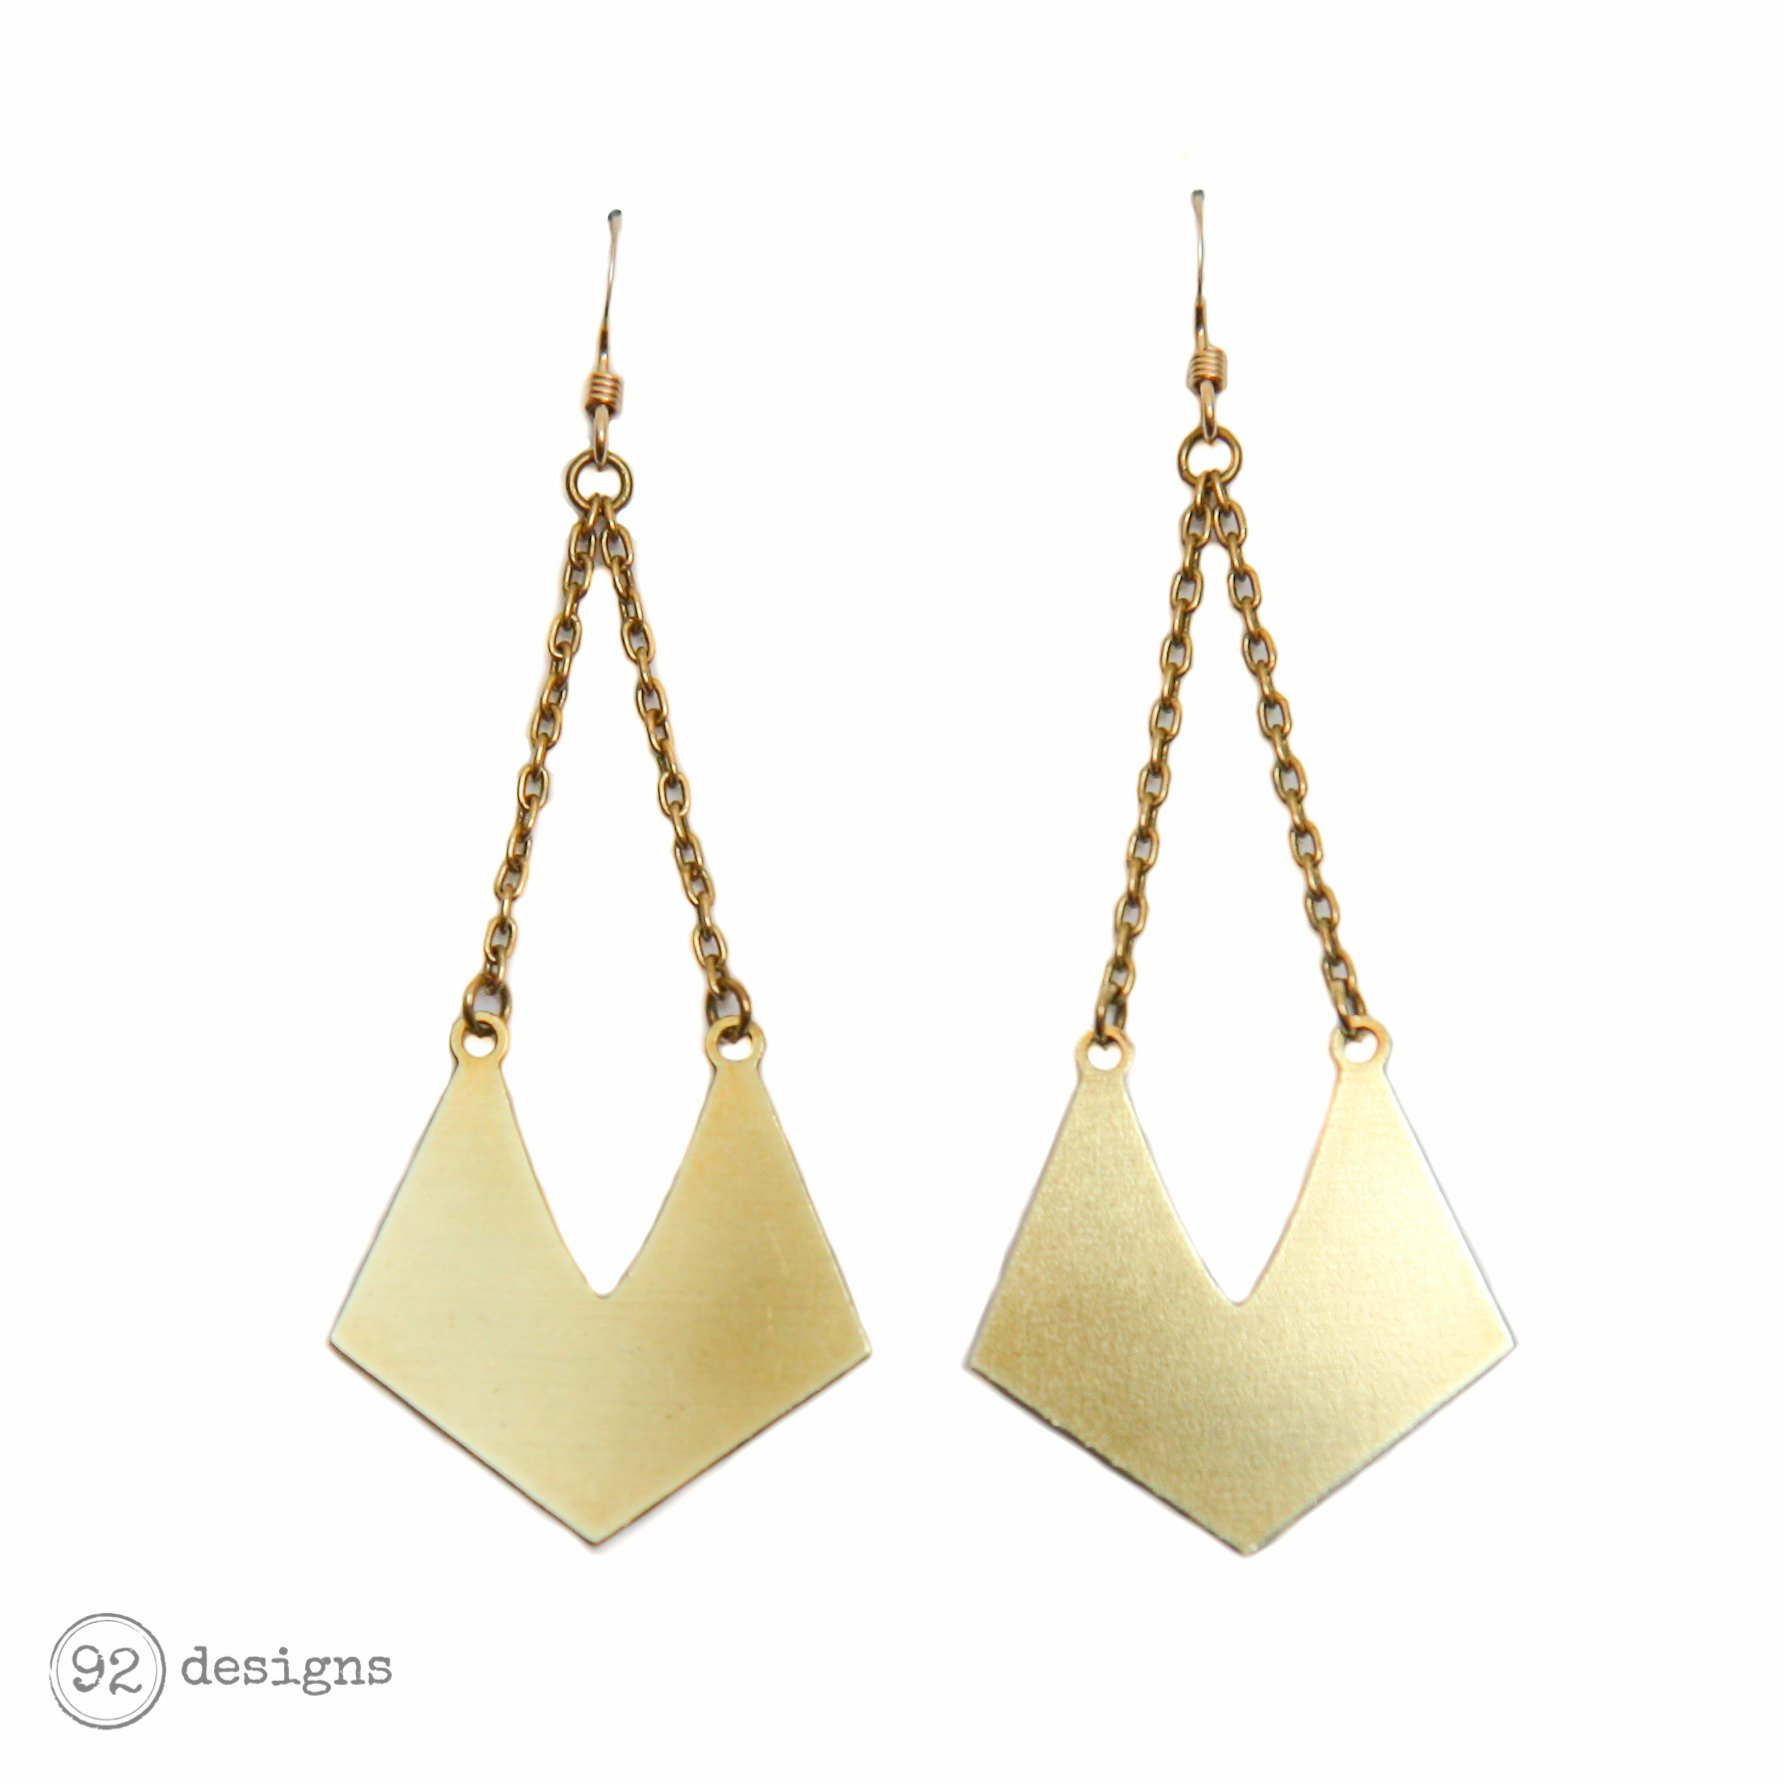 Manta Earrings - Brass